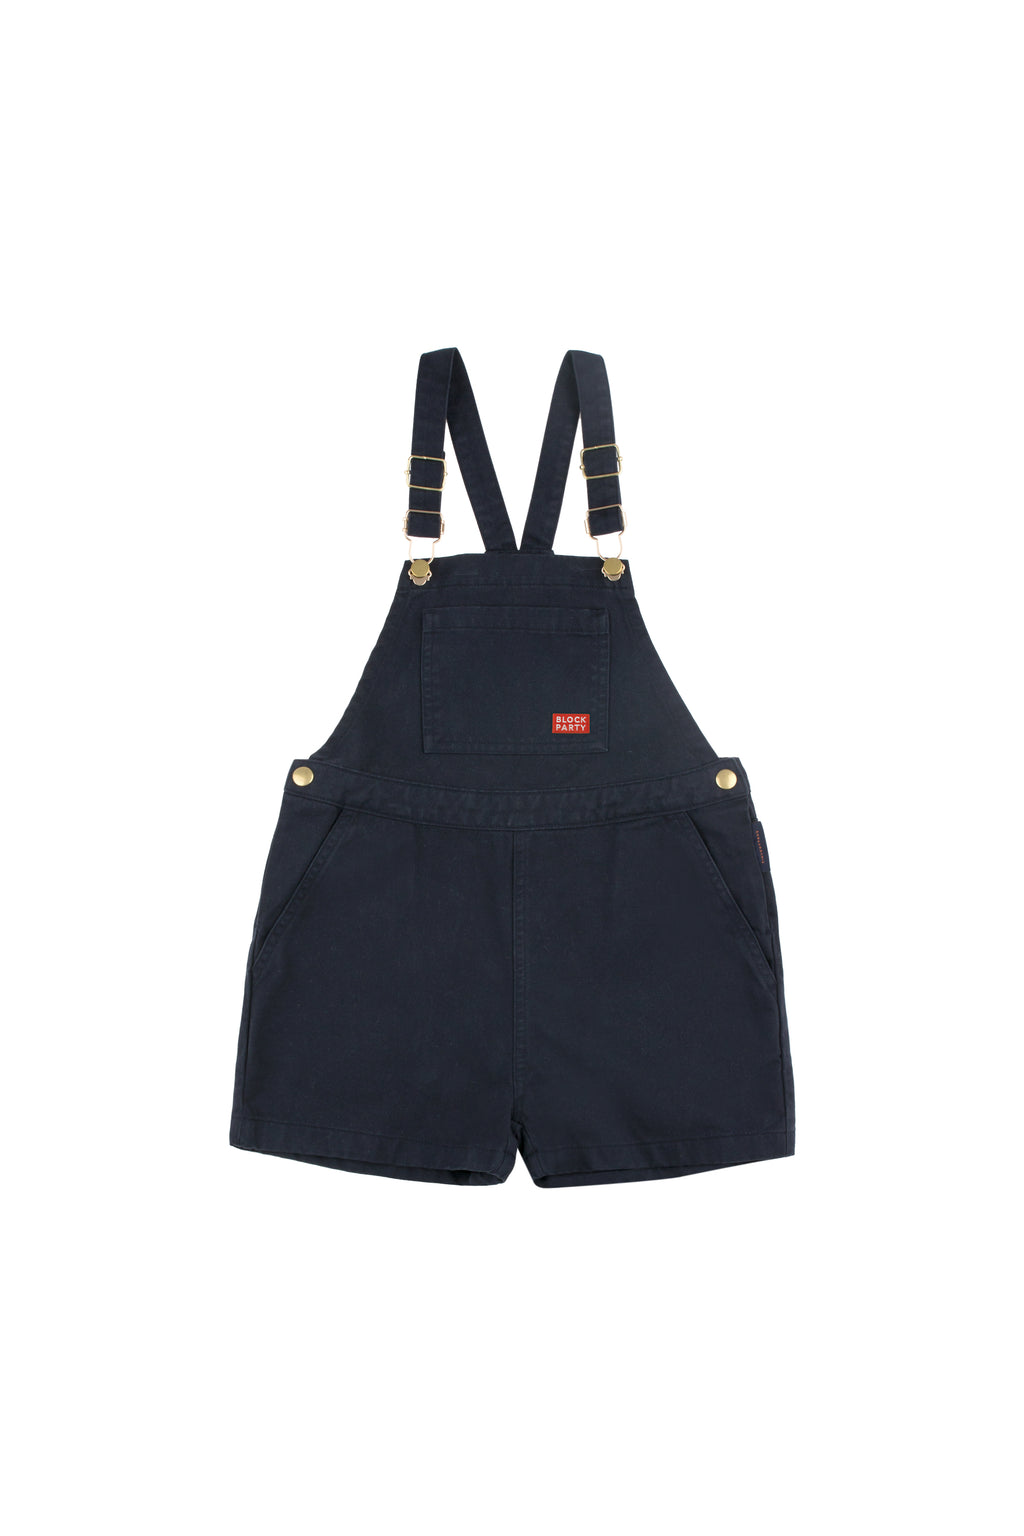 Tiny Cottons Block Party Short Overall - Navy